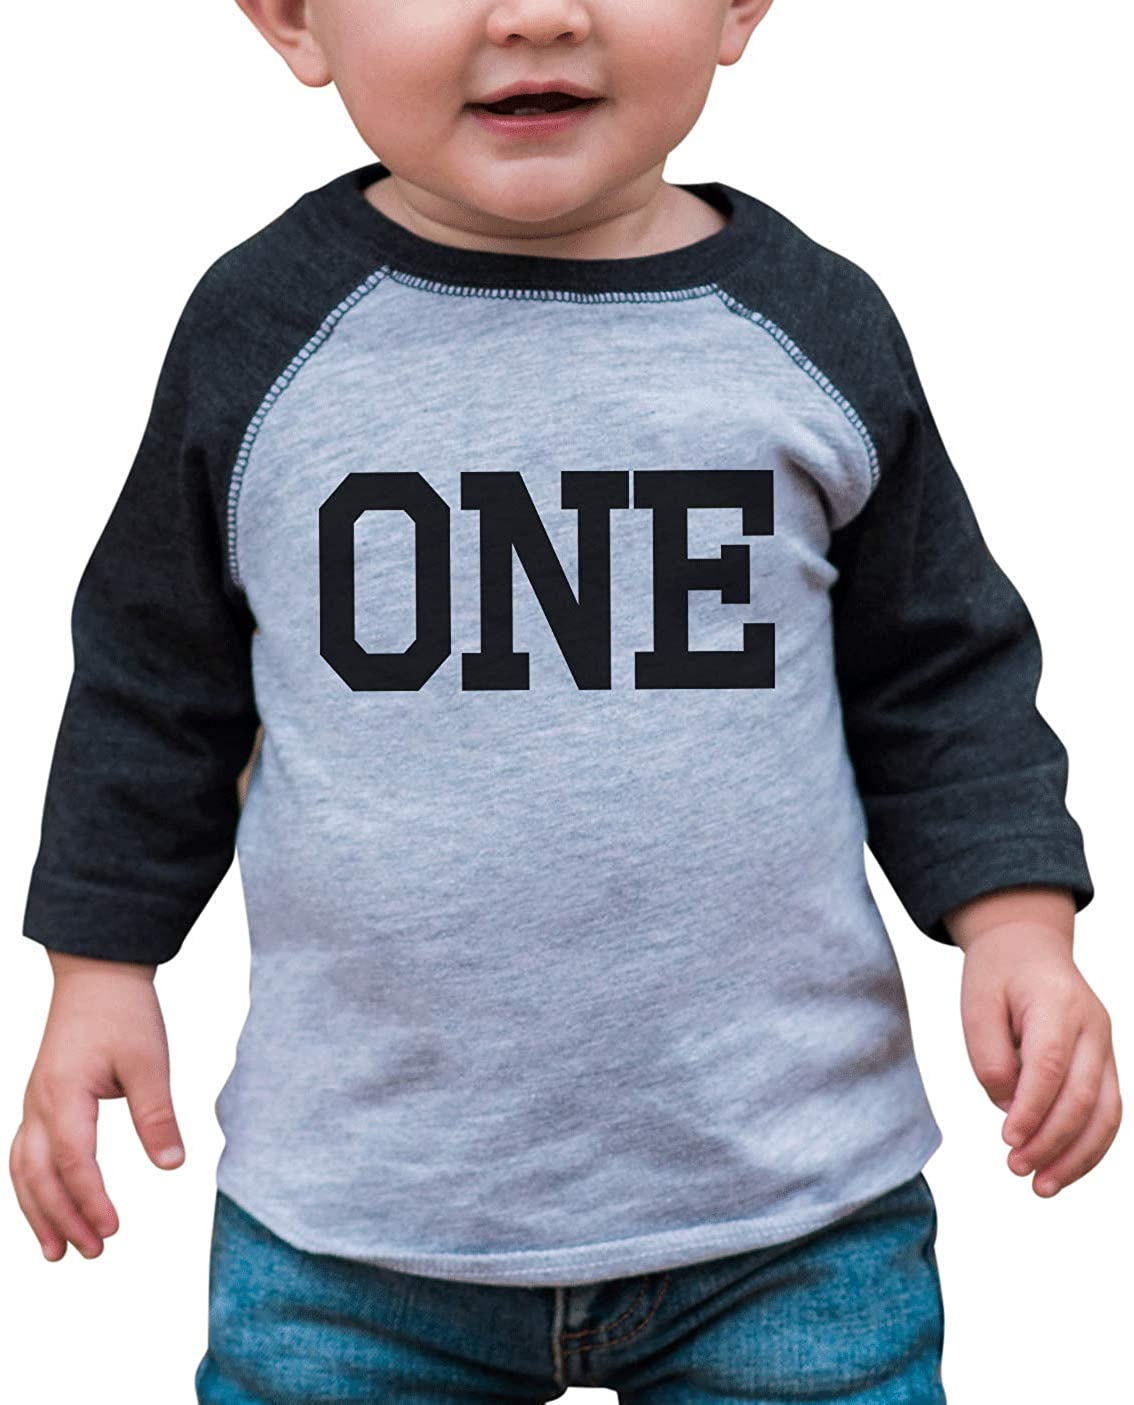 7 ate 9 Apparel Boy's First Birthday One Vintage Baseball Tee Grey and Black